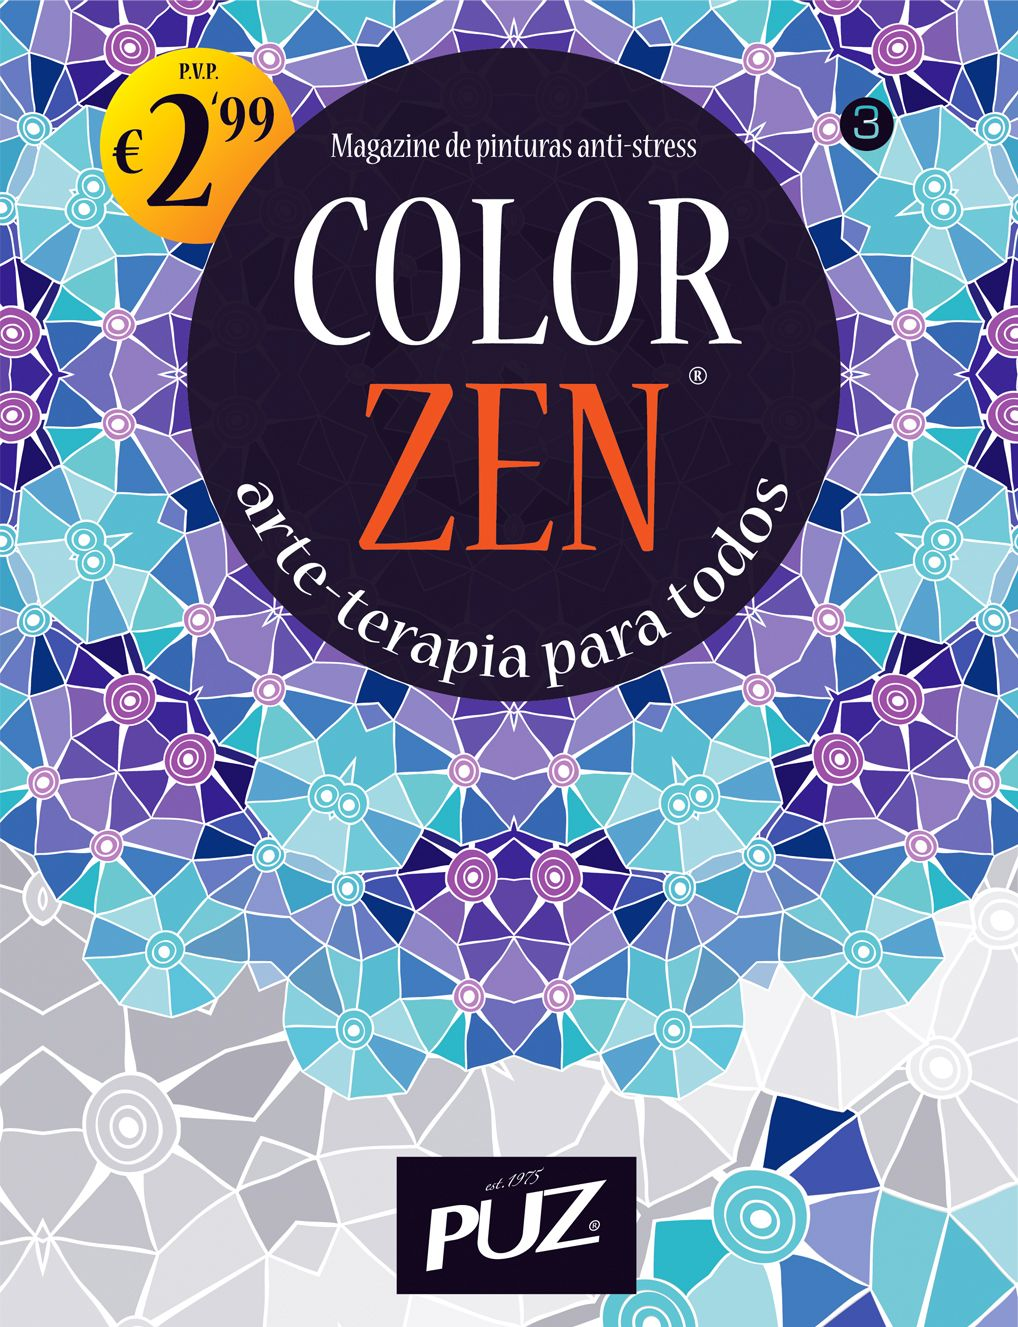 Color zen nr 3 magazine de pinturas anti stress da puz arte